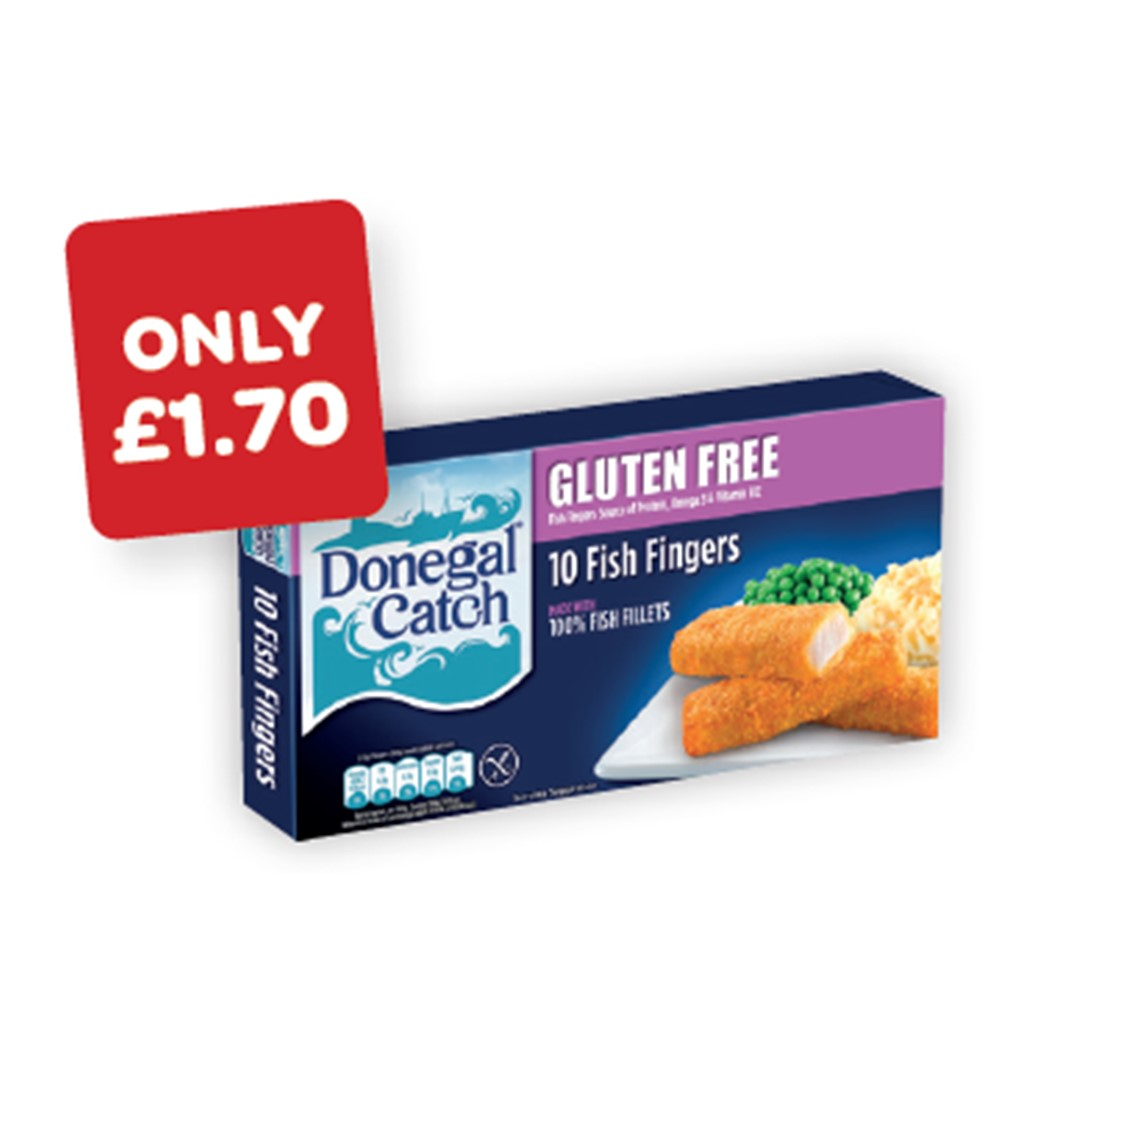 Donegal Catch Gluten Free Fish Fingers